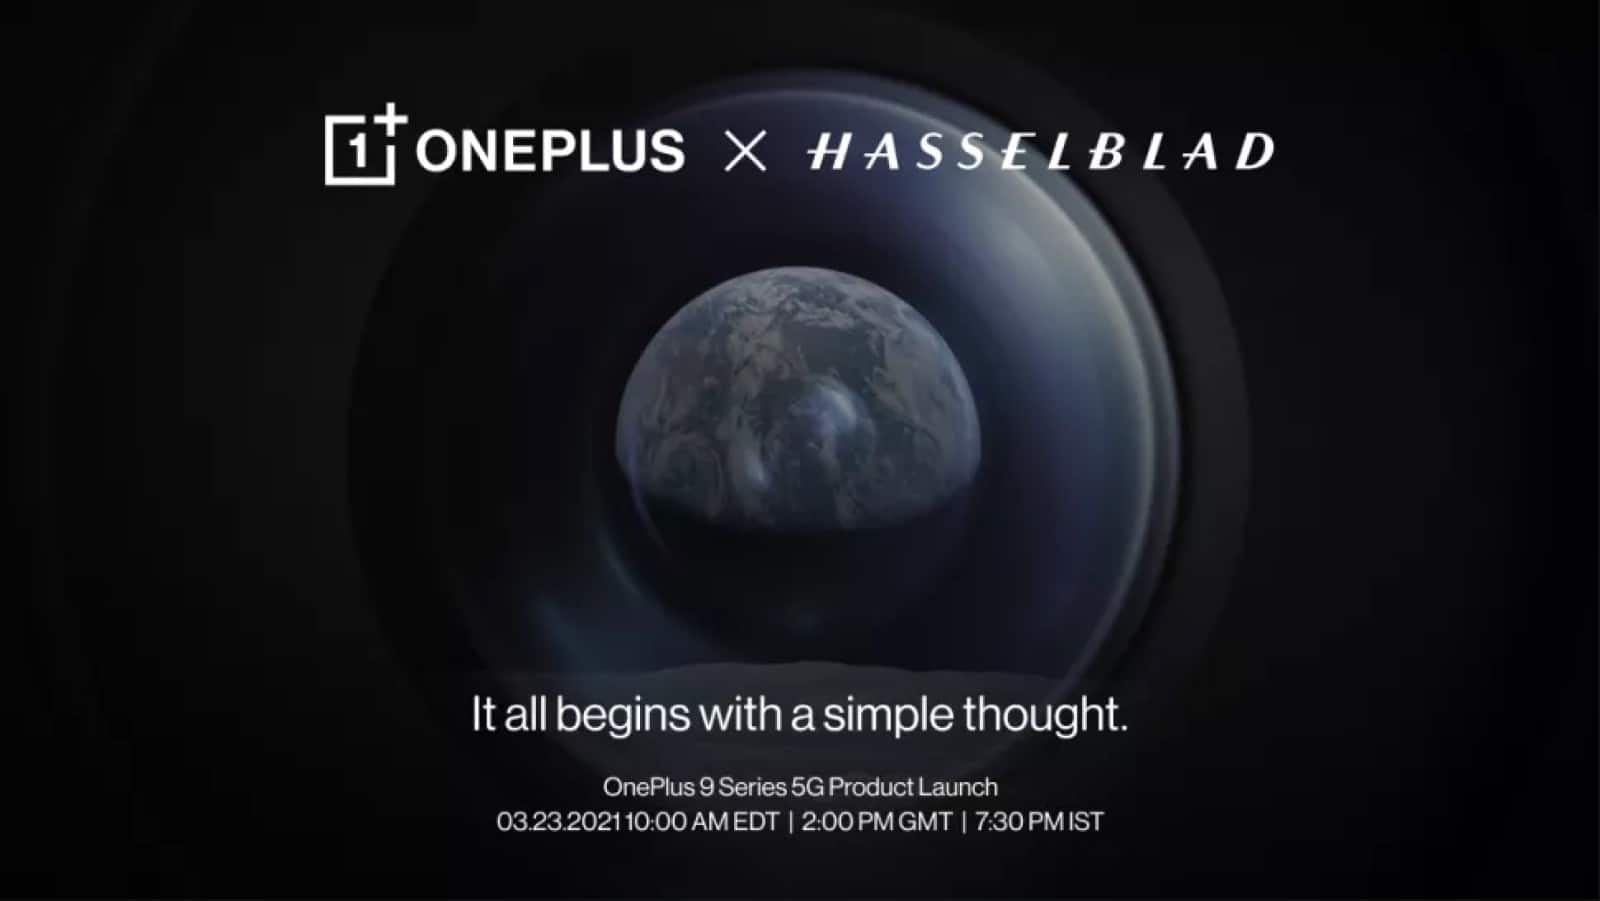 oneplus event march 23 with hasselblad